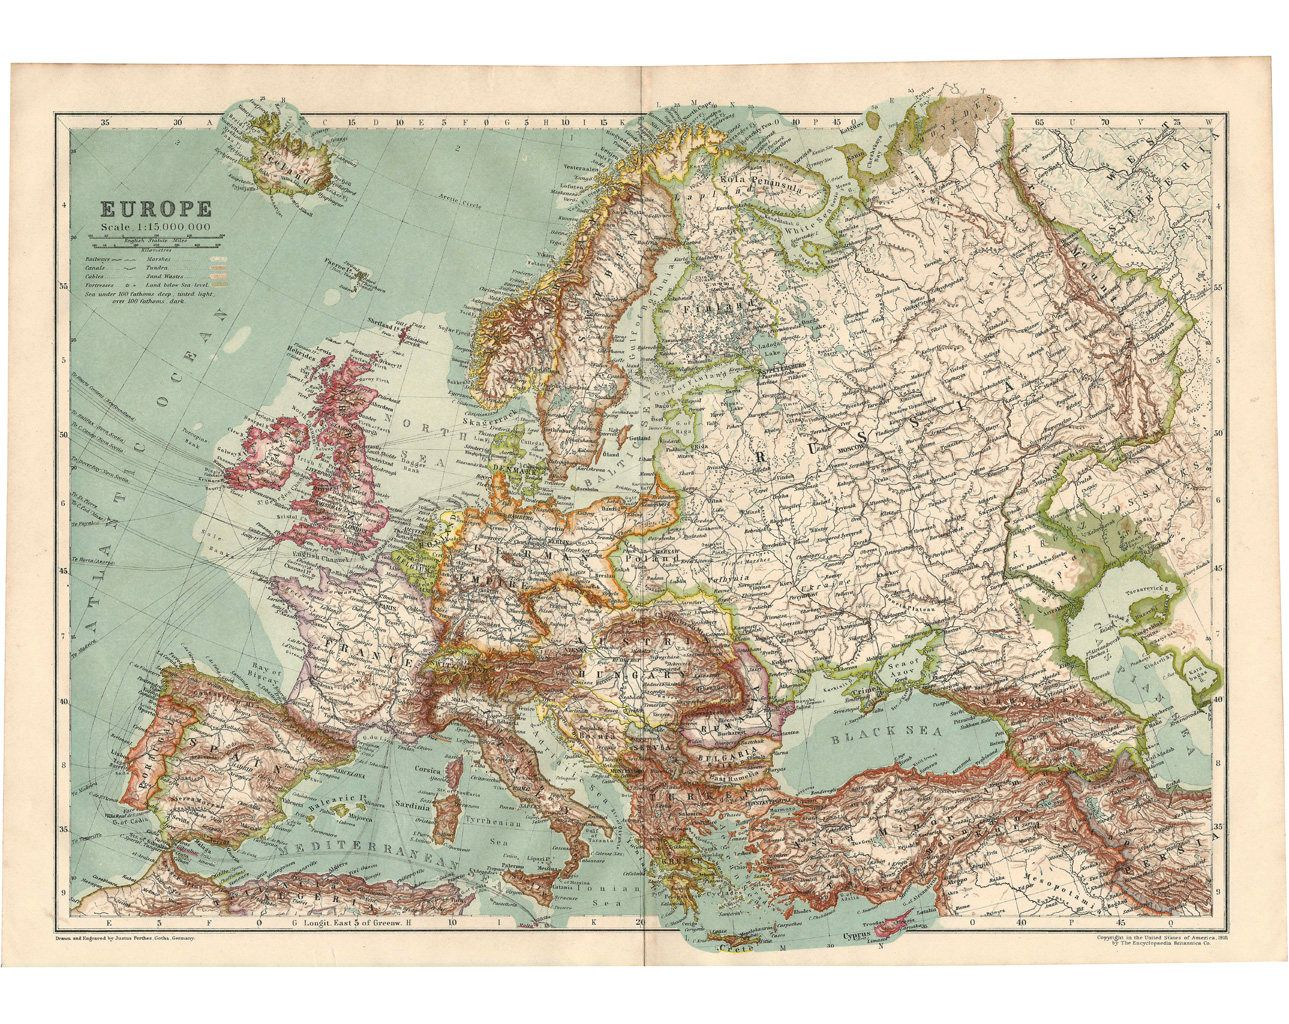 Europe, Authentic Antique Map Pre-World War I: 1910, Full ... on production world map, ph world map, co world map, add world map, pr world map, earlier world map, col world map, son world map, mal world map, area world map, sec world map, pop world map, second world map, iphone world map, mea world map, palm world map, pri world map, br world map, key world map, hp world map,